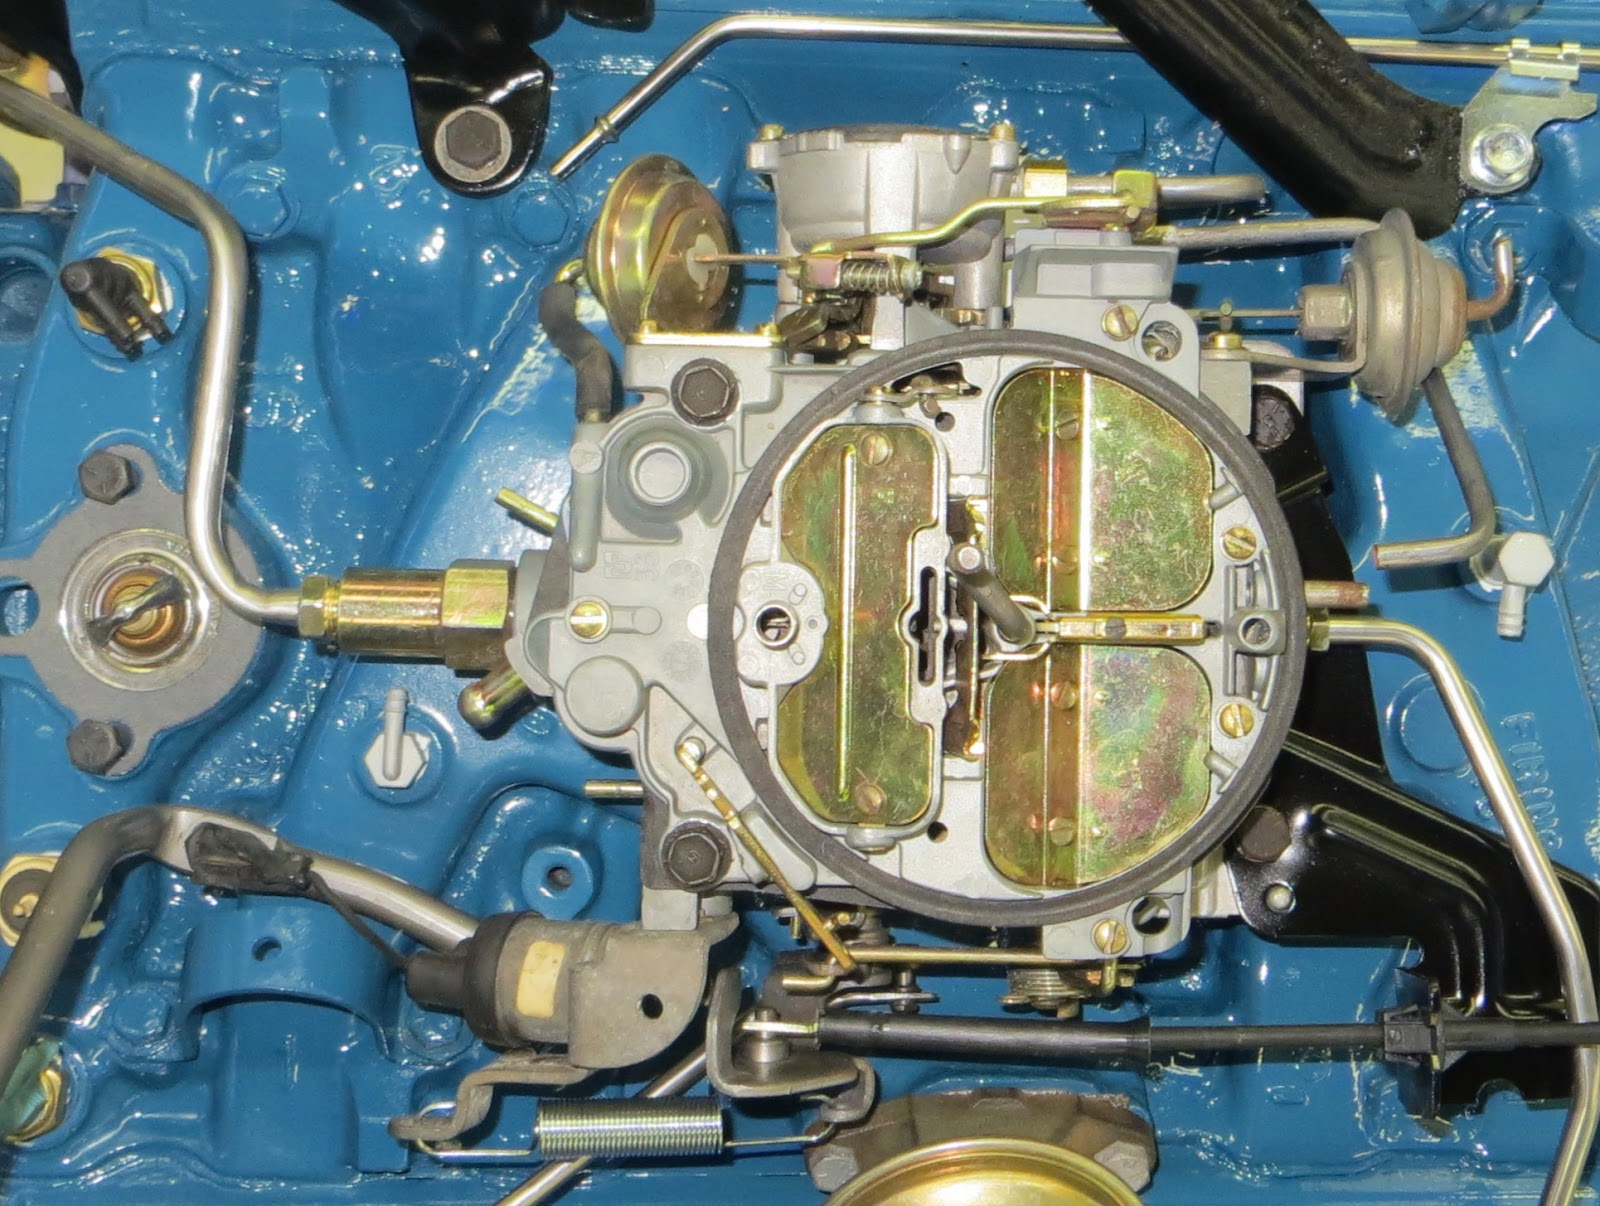 Warning automotive content 1978 trans am project part 5 vj9 17058553 quadrajet 4 barrel carburetor with no vacuum lines connected ccuart Image collections